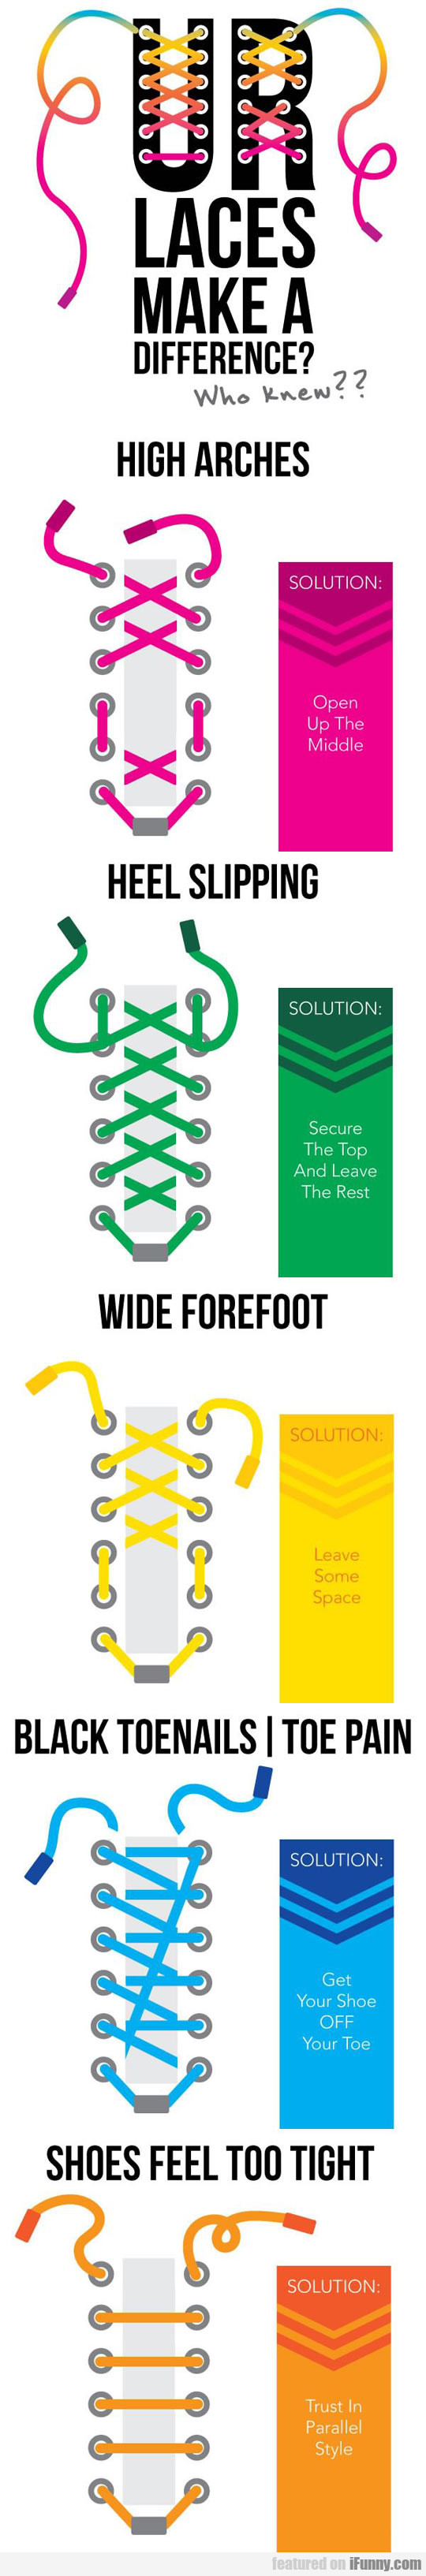 How To Lace Shoes